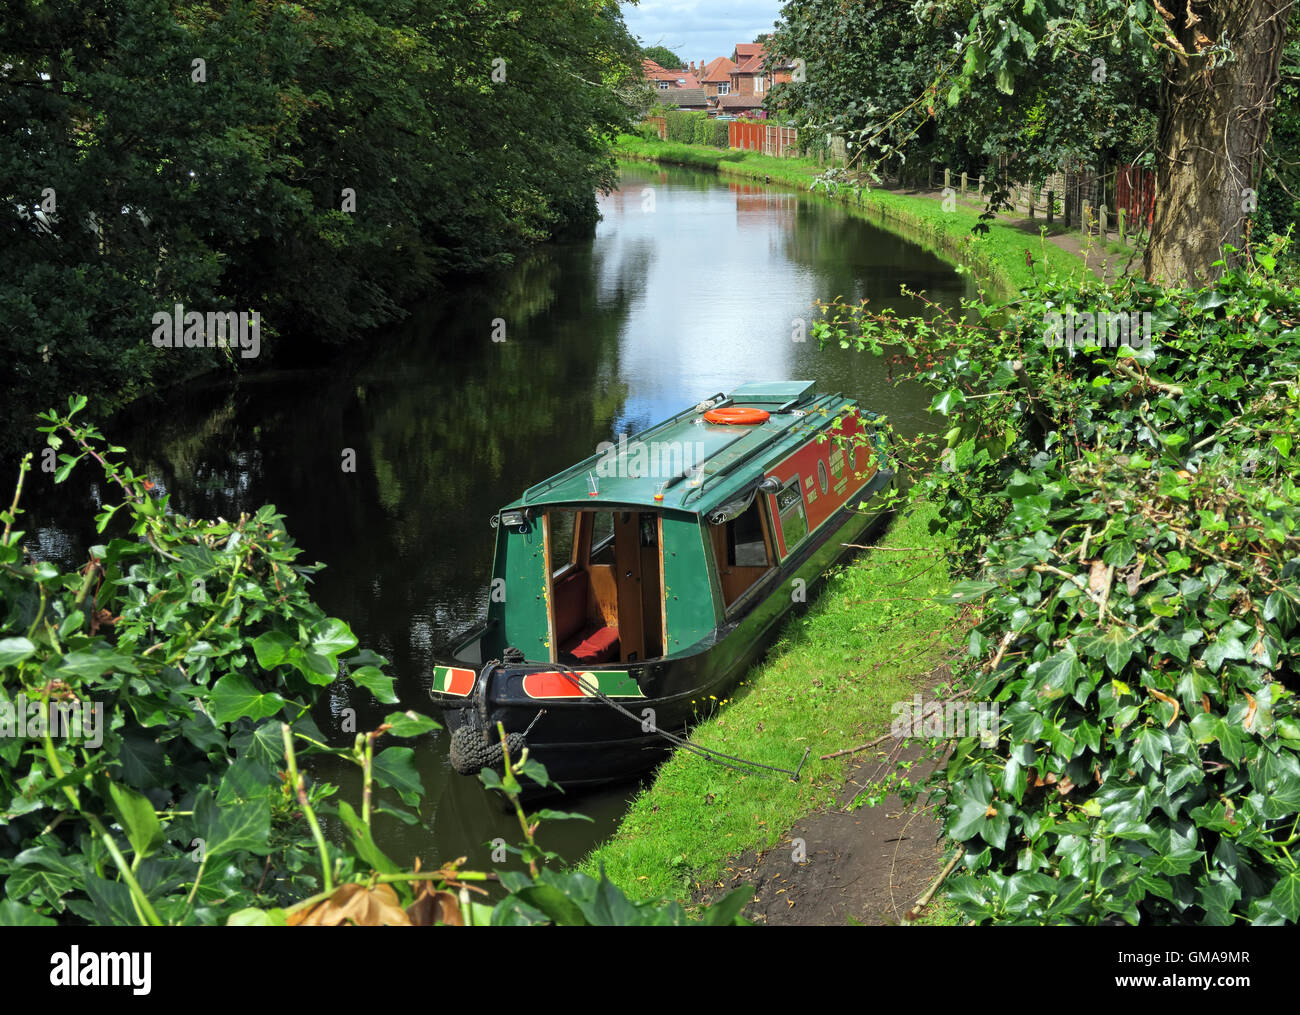 Narrowboat barge, boat moored on the Bridgewater Canal, Grappenhall village, Warrington, Cheshire, WA4 2PL, in summer - Stock Image